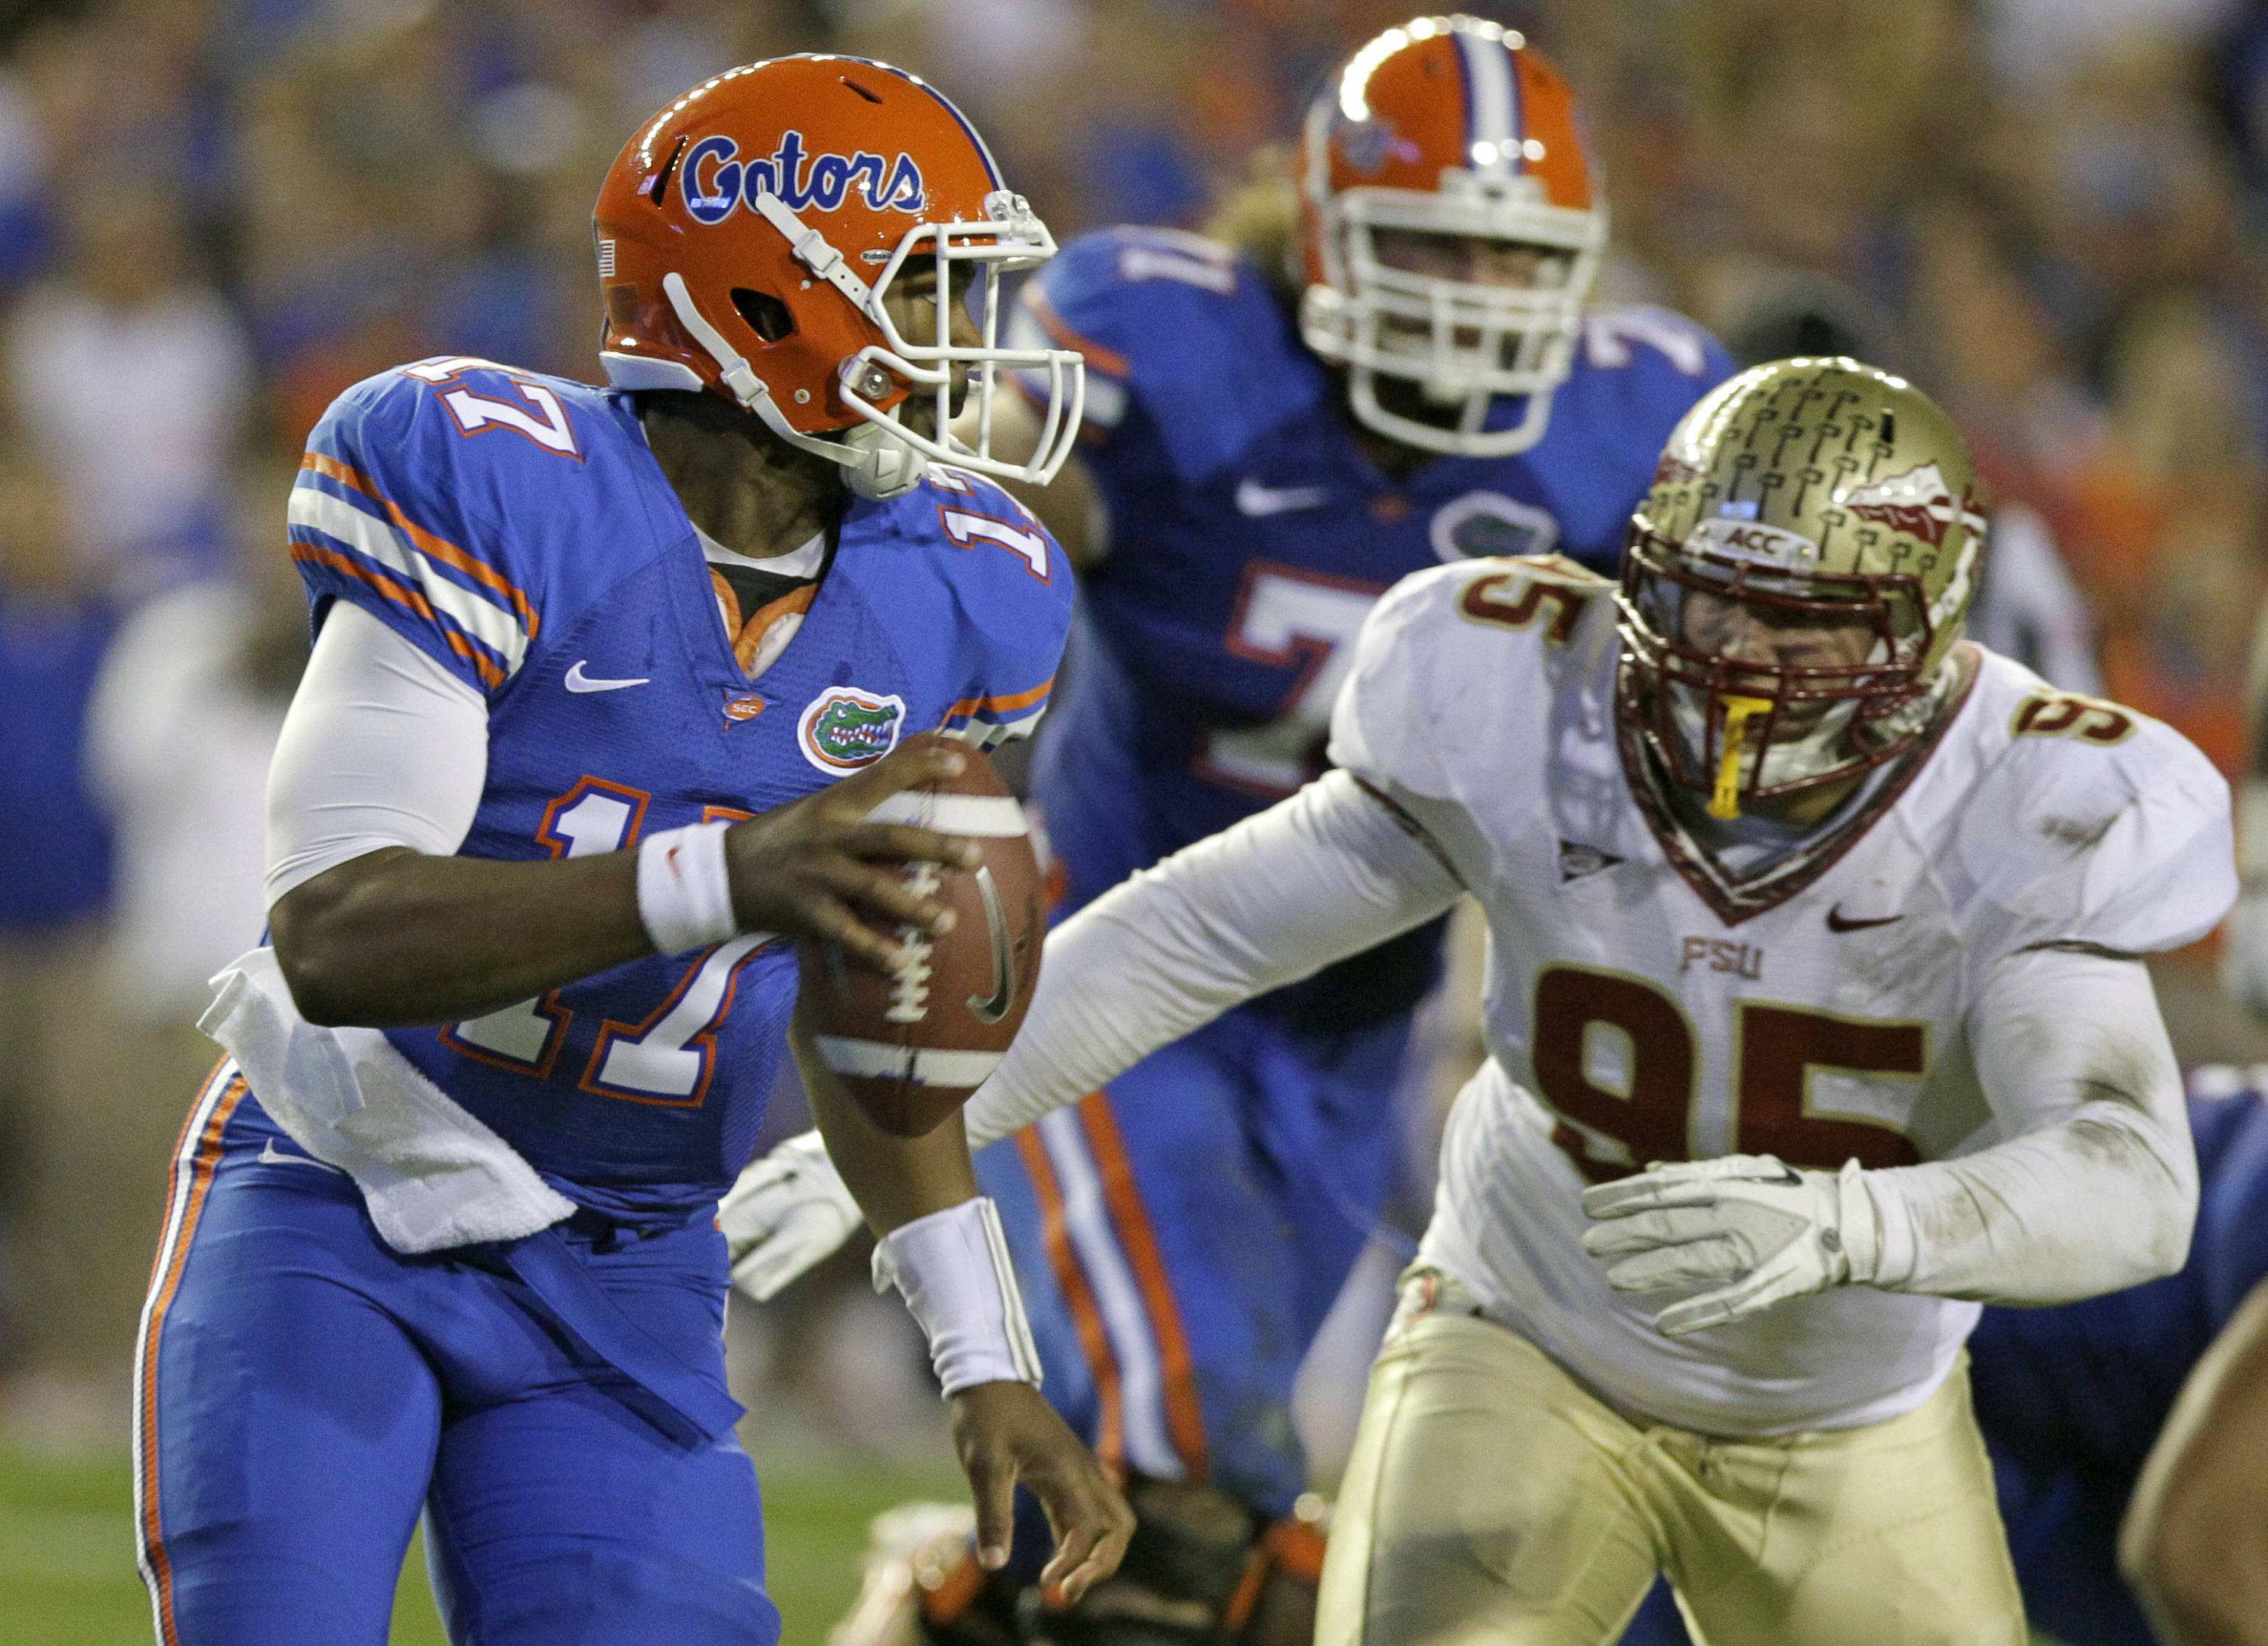 Florida quarterback Jacoby Brissett, left, scrambles as he looks for a receiver while Florida State defensive end Bjoern Werner (95) gives chase during the first half of an NCAA college football game on Saturday, Nov. 26, 2011, in Gainesville, Fla. (AP Photo/John Raoux)